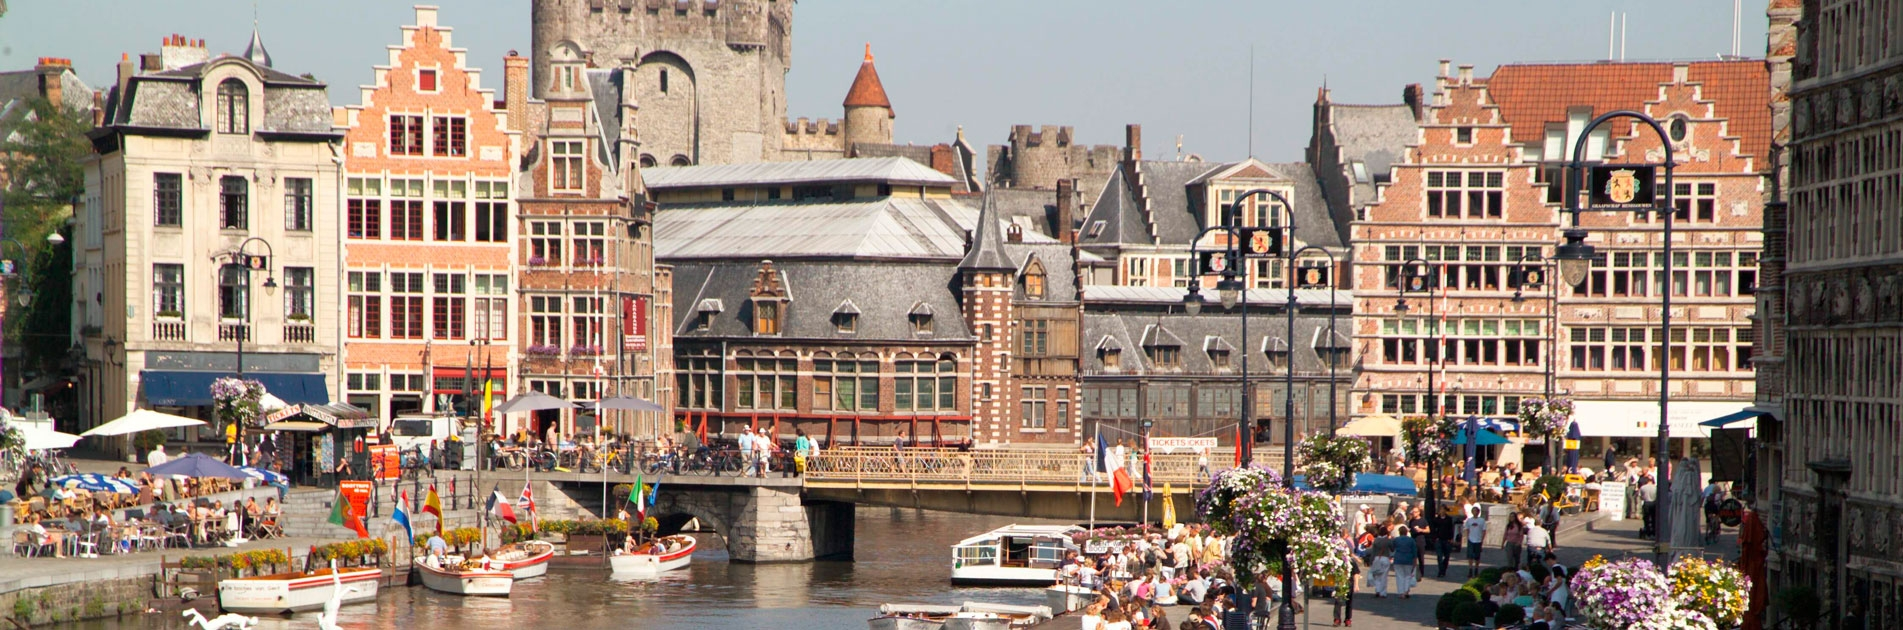 Lively city in Belgium